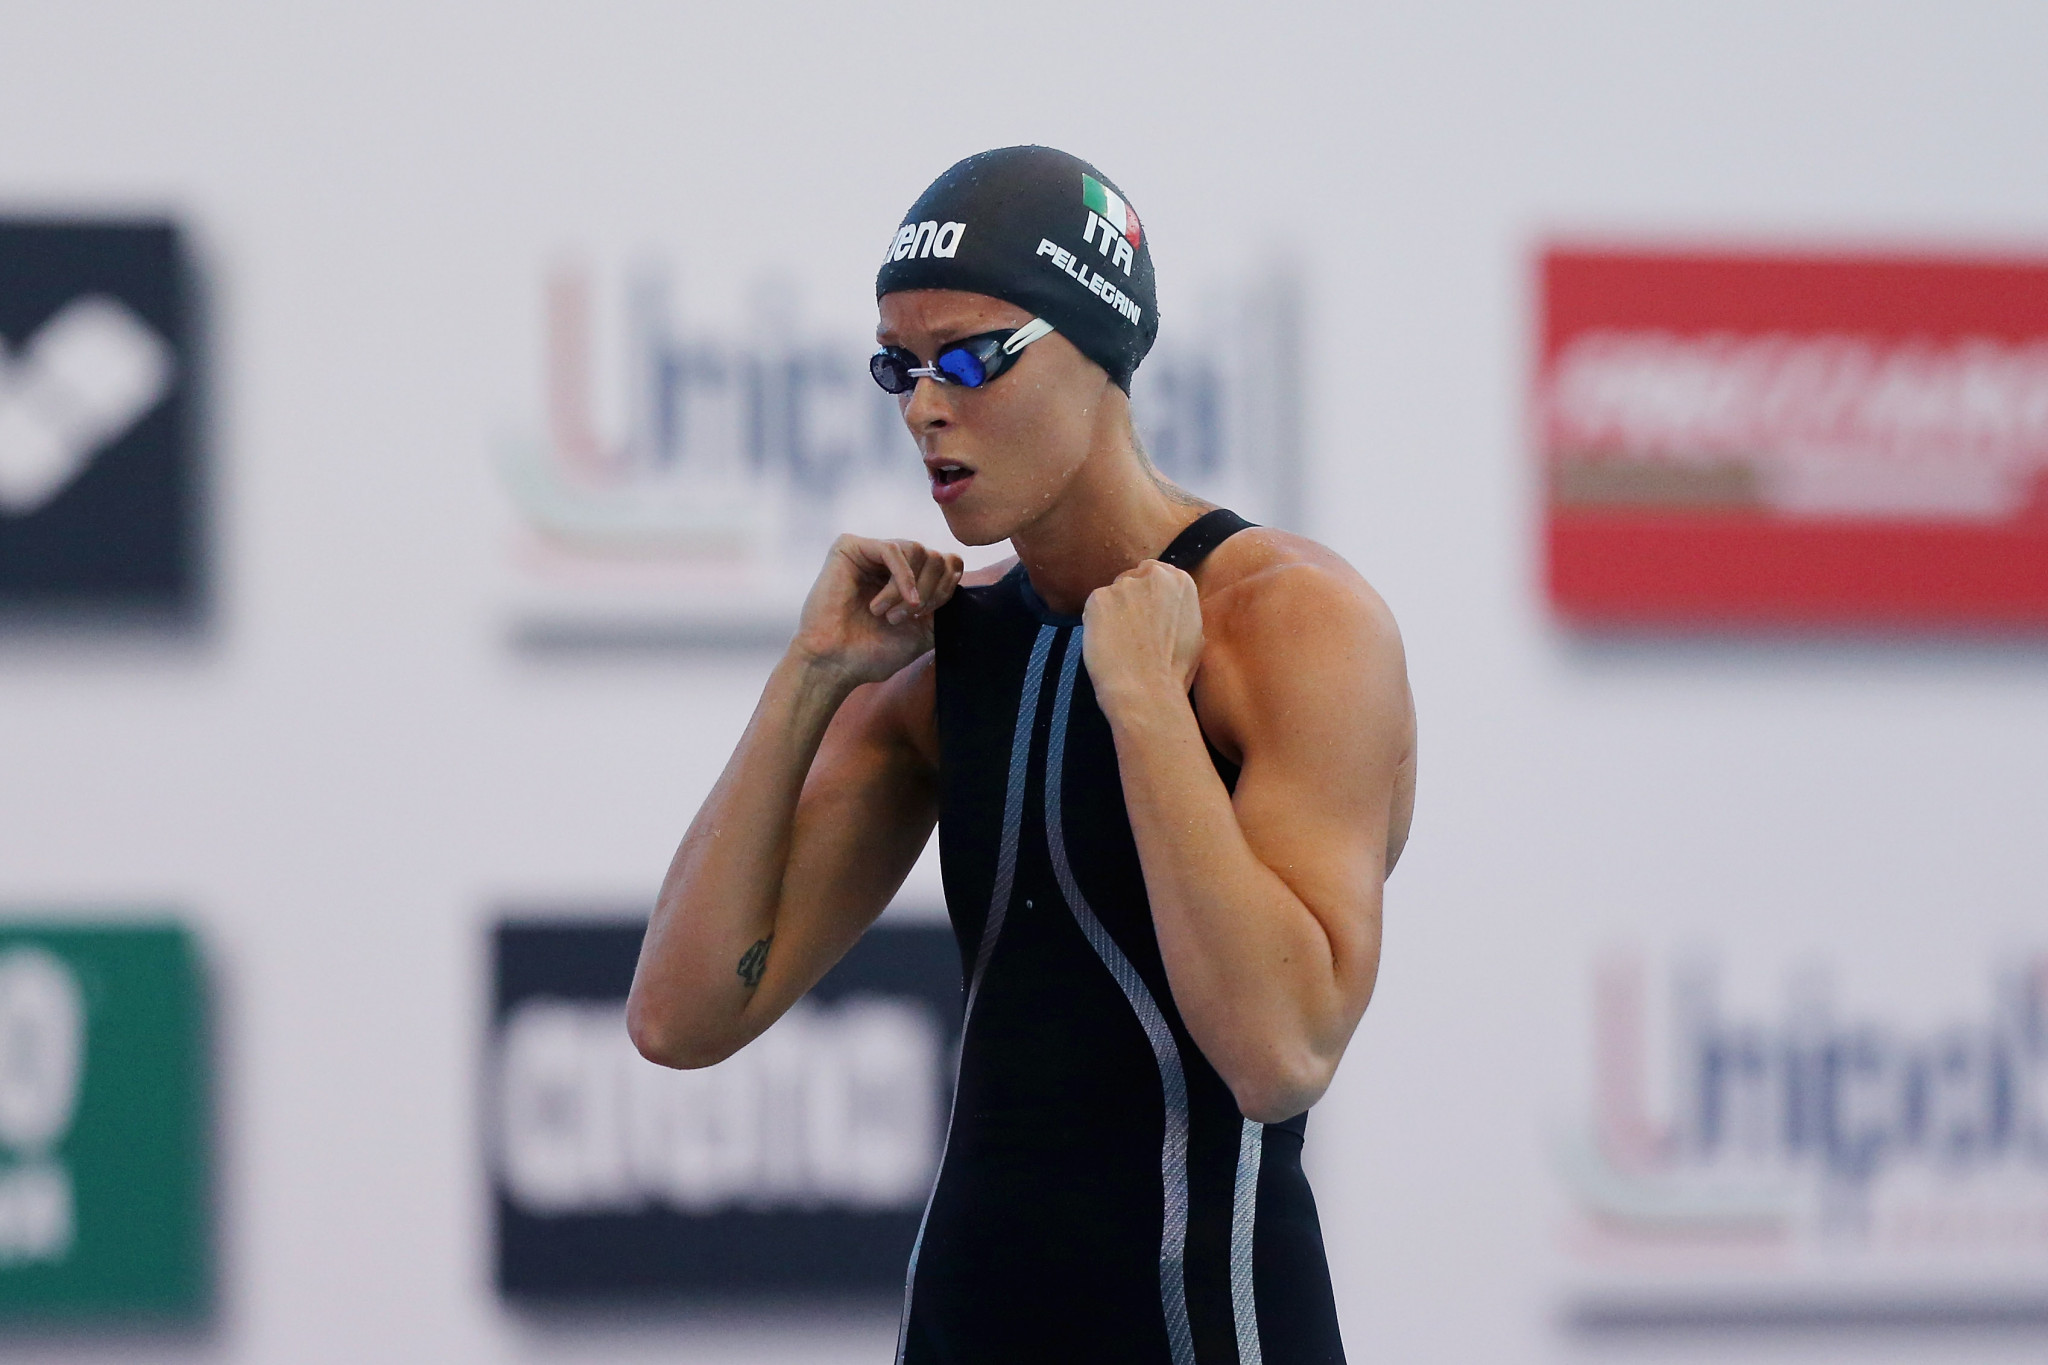 Pellegrini withdraws from International Swimming League after testing positive for COVID-19